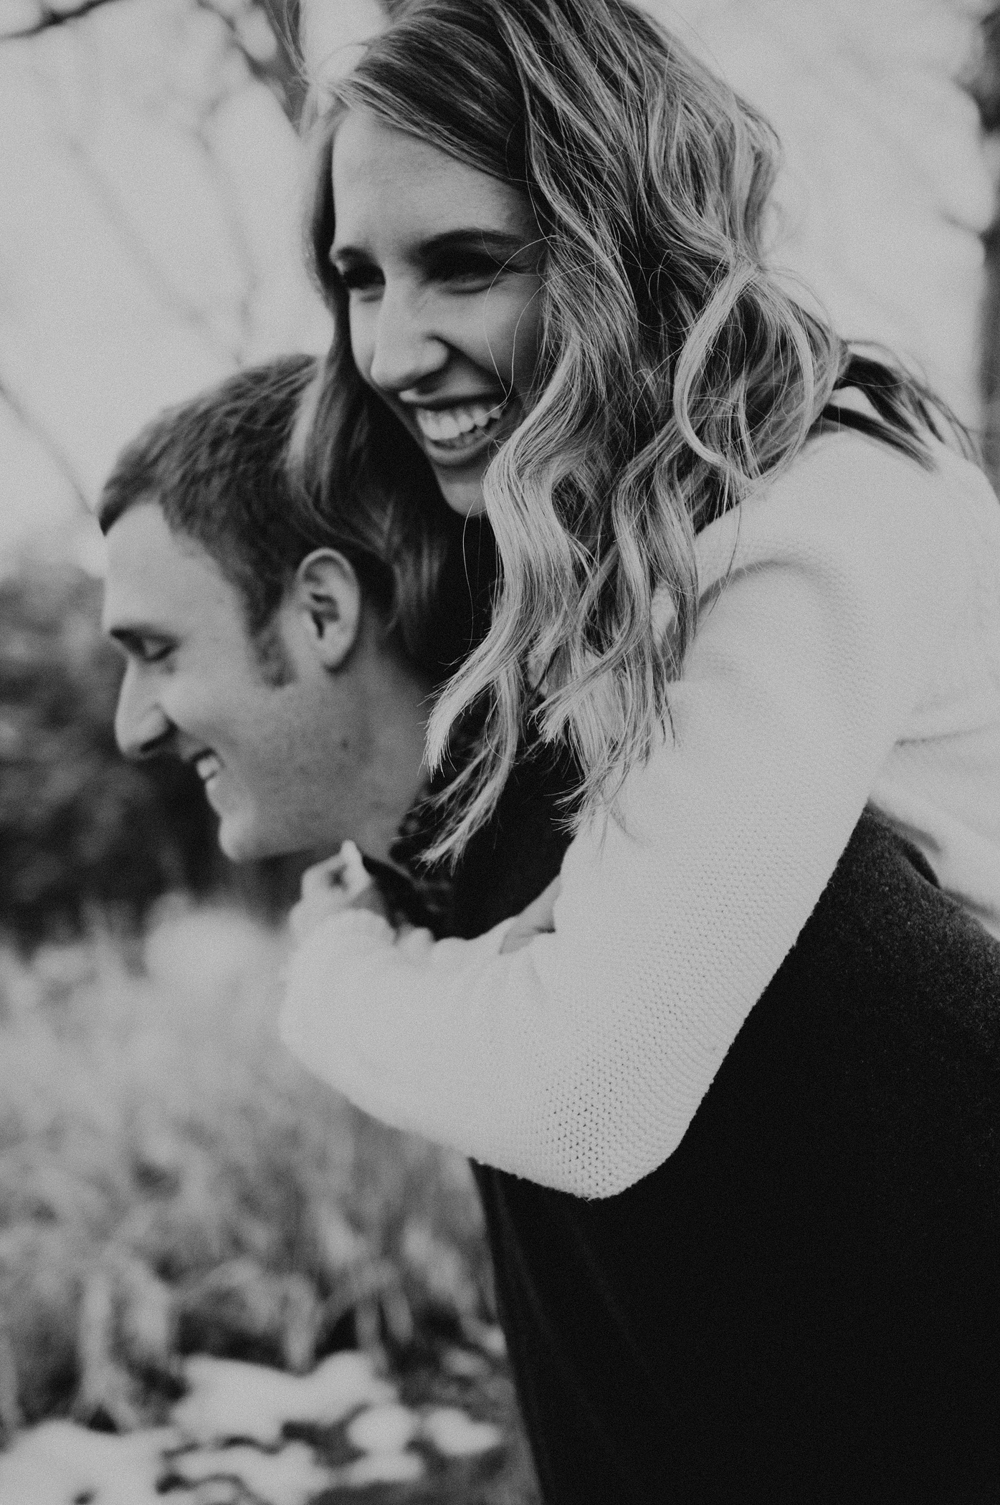 kaylie-sirek-nebraska-wedding-engagement-photographer-photography-grand-island-kearney-hastings-lincoln-10.png